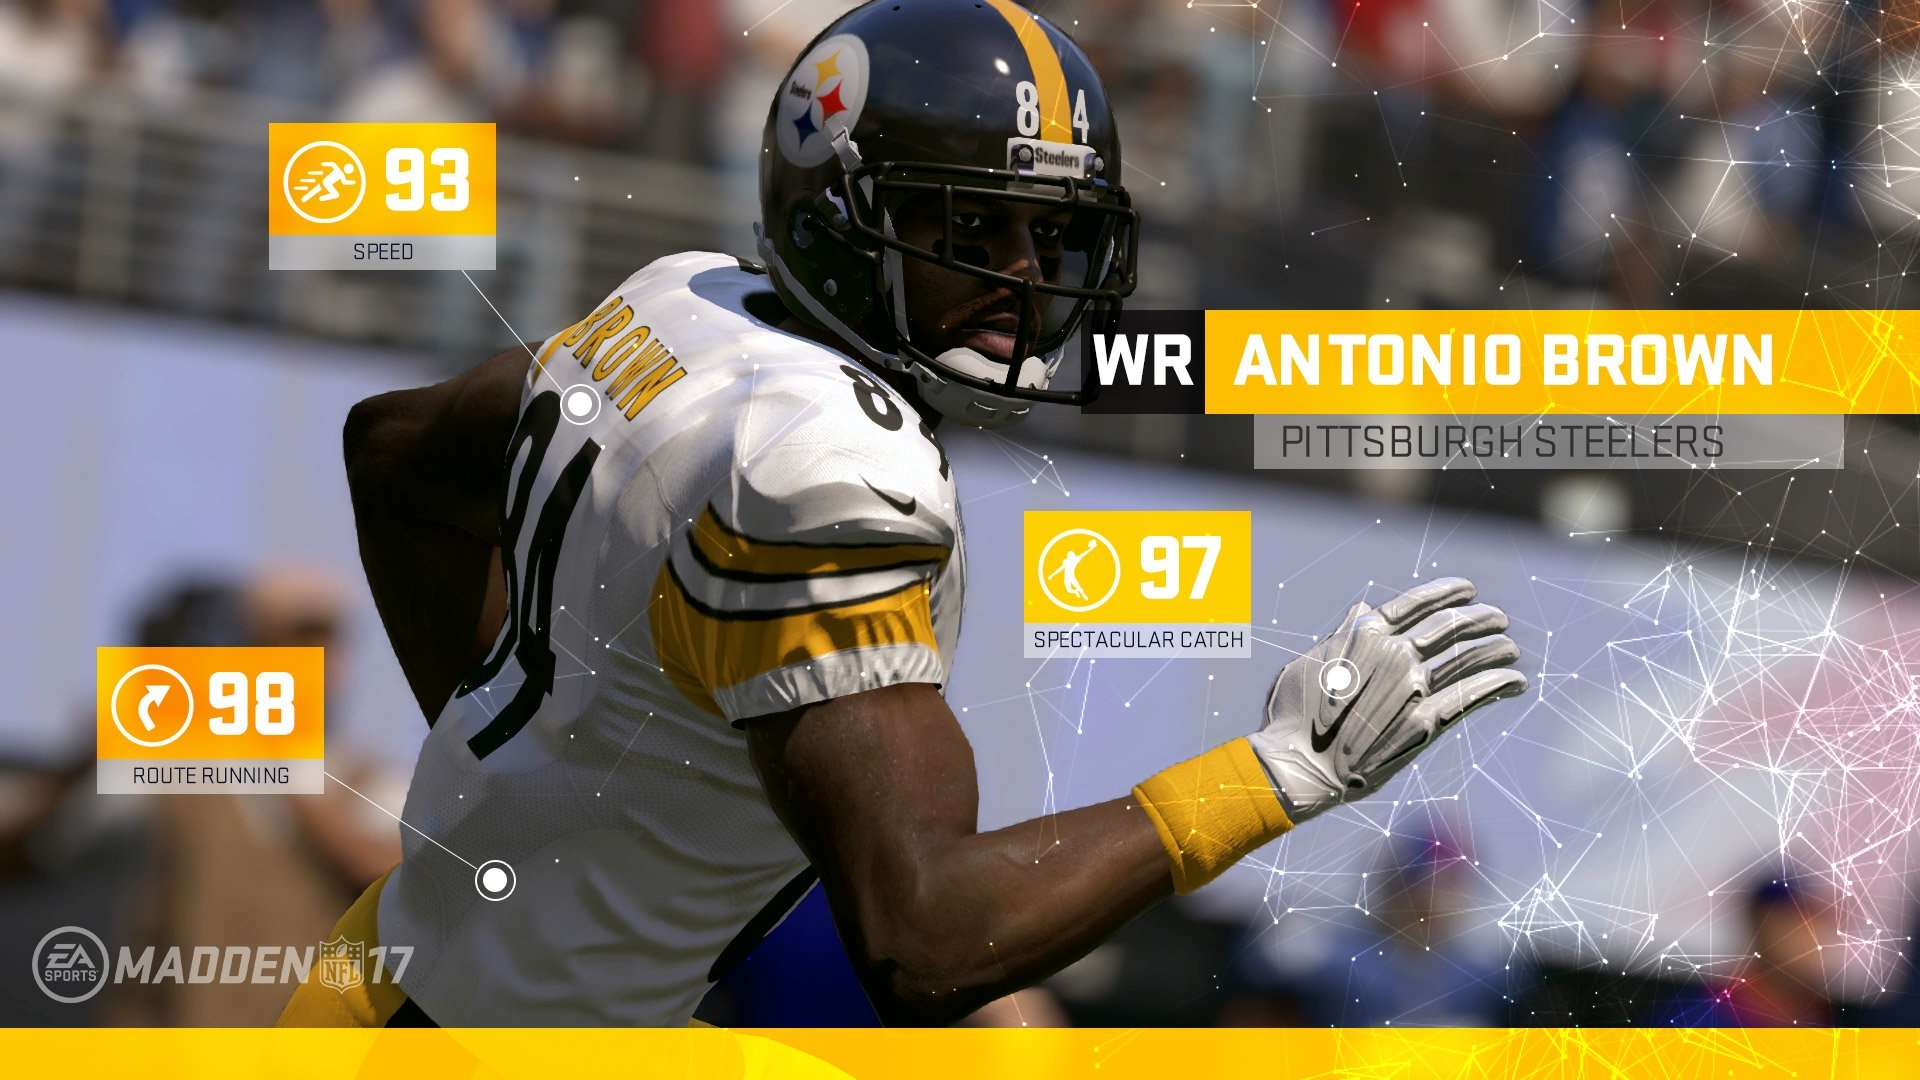 Madden-nfl-17-antonio-brown-ratings_1rqiekppq0i531pxf4i7cbgyb3